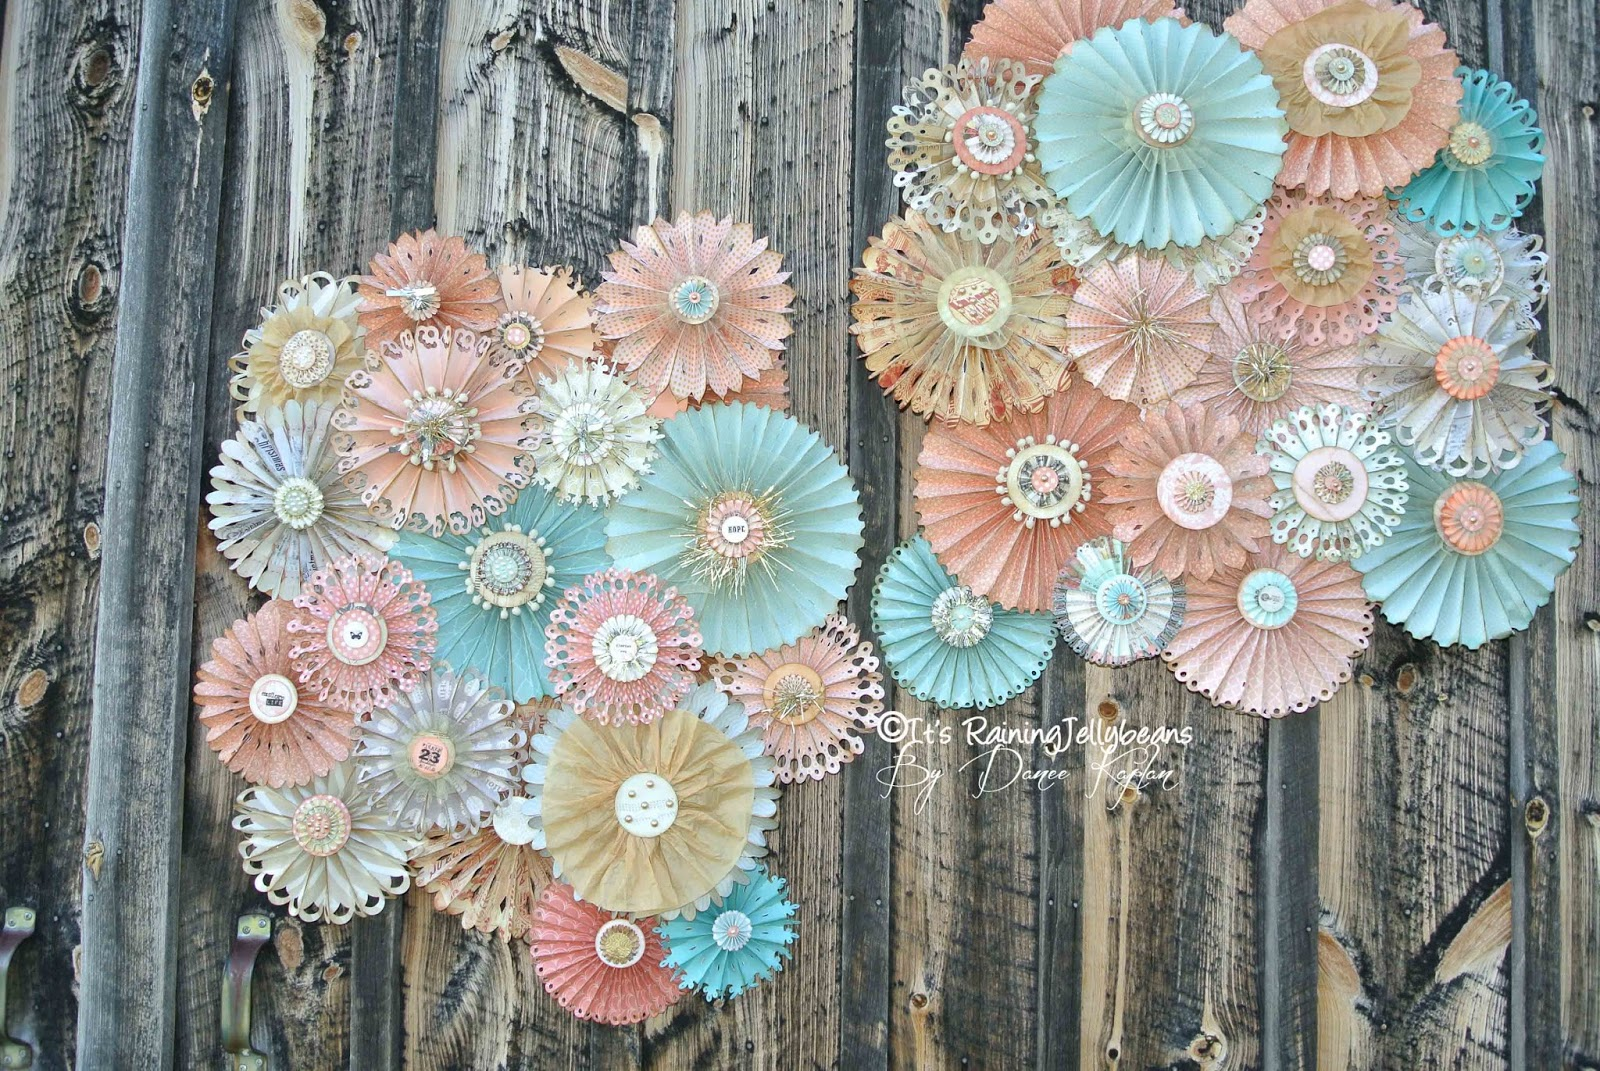 It's Raining JellyBeans: Wedding: Rosette Wall Decor